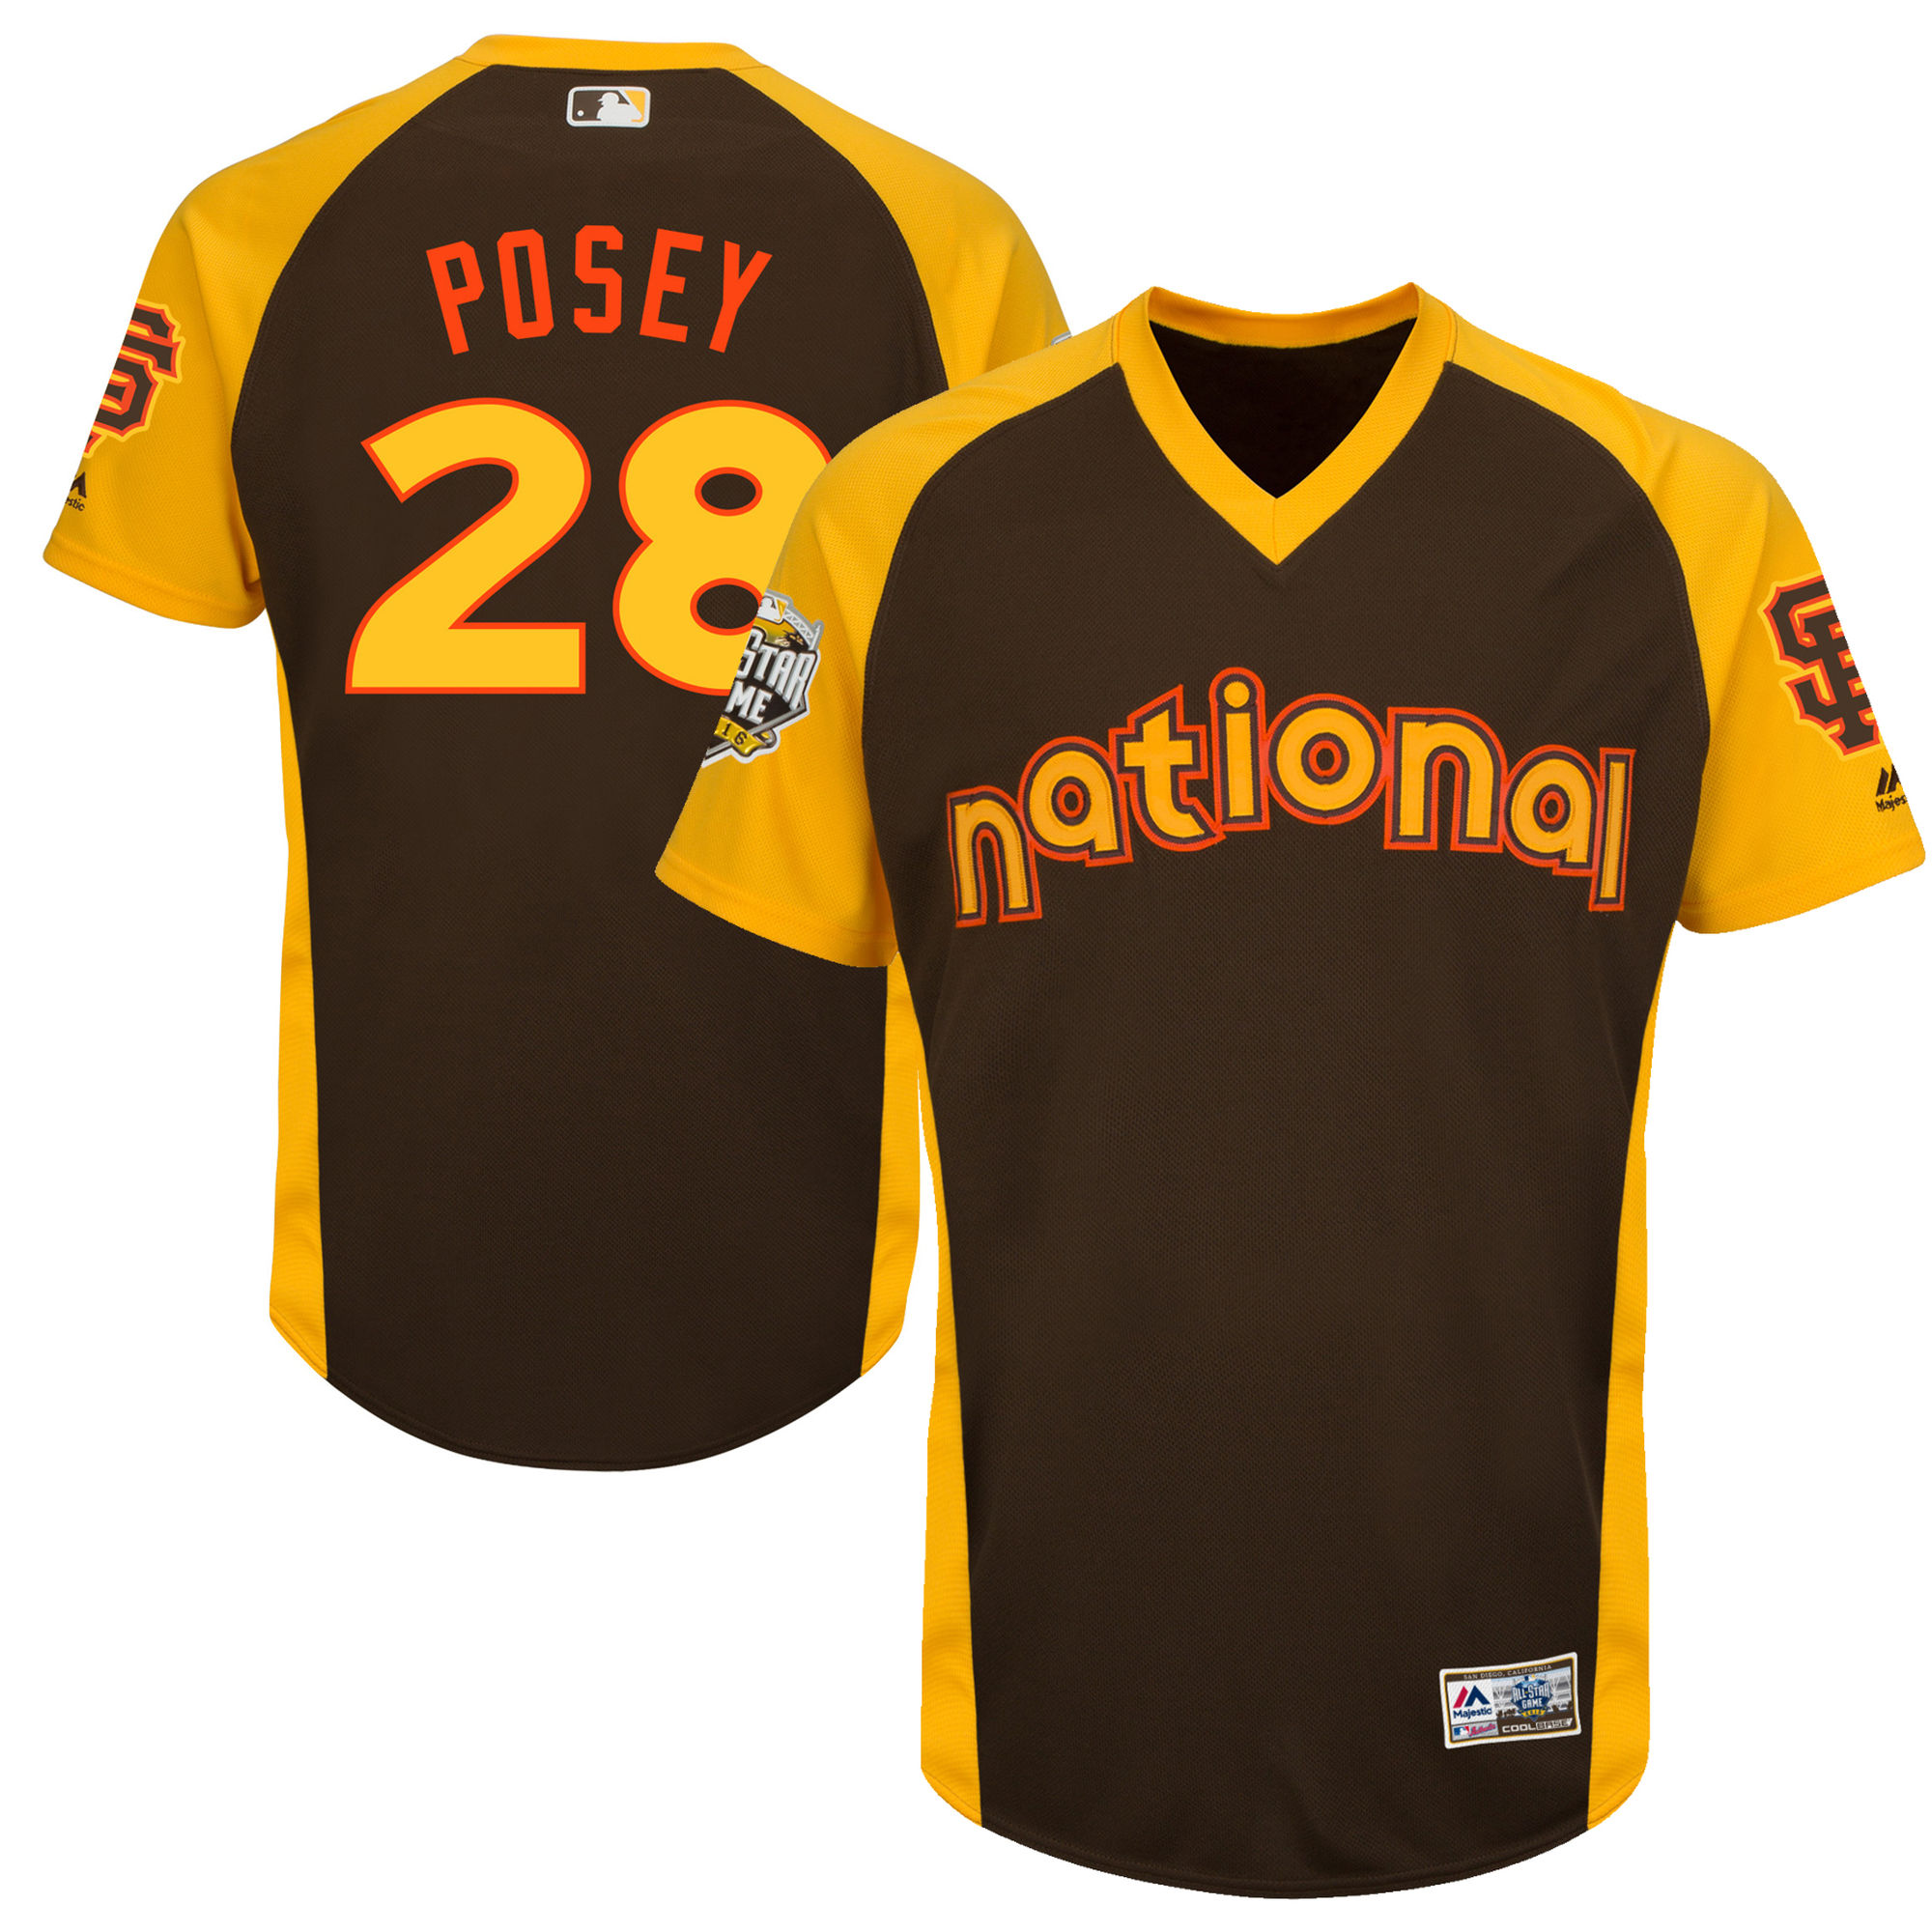 Giants 28 Buster Posey Brown Youth 2016 All-Star Game Cool Base Batting Practice Player Jersey